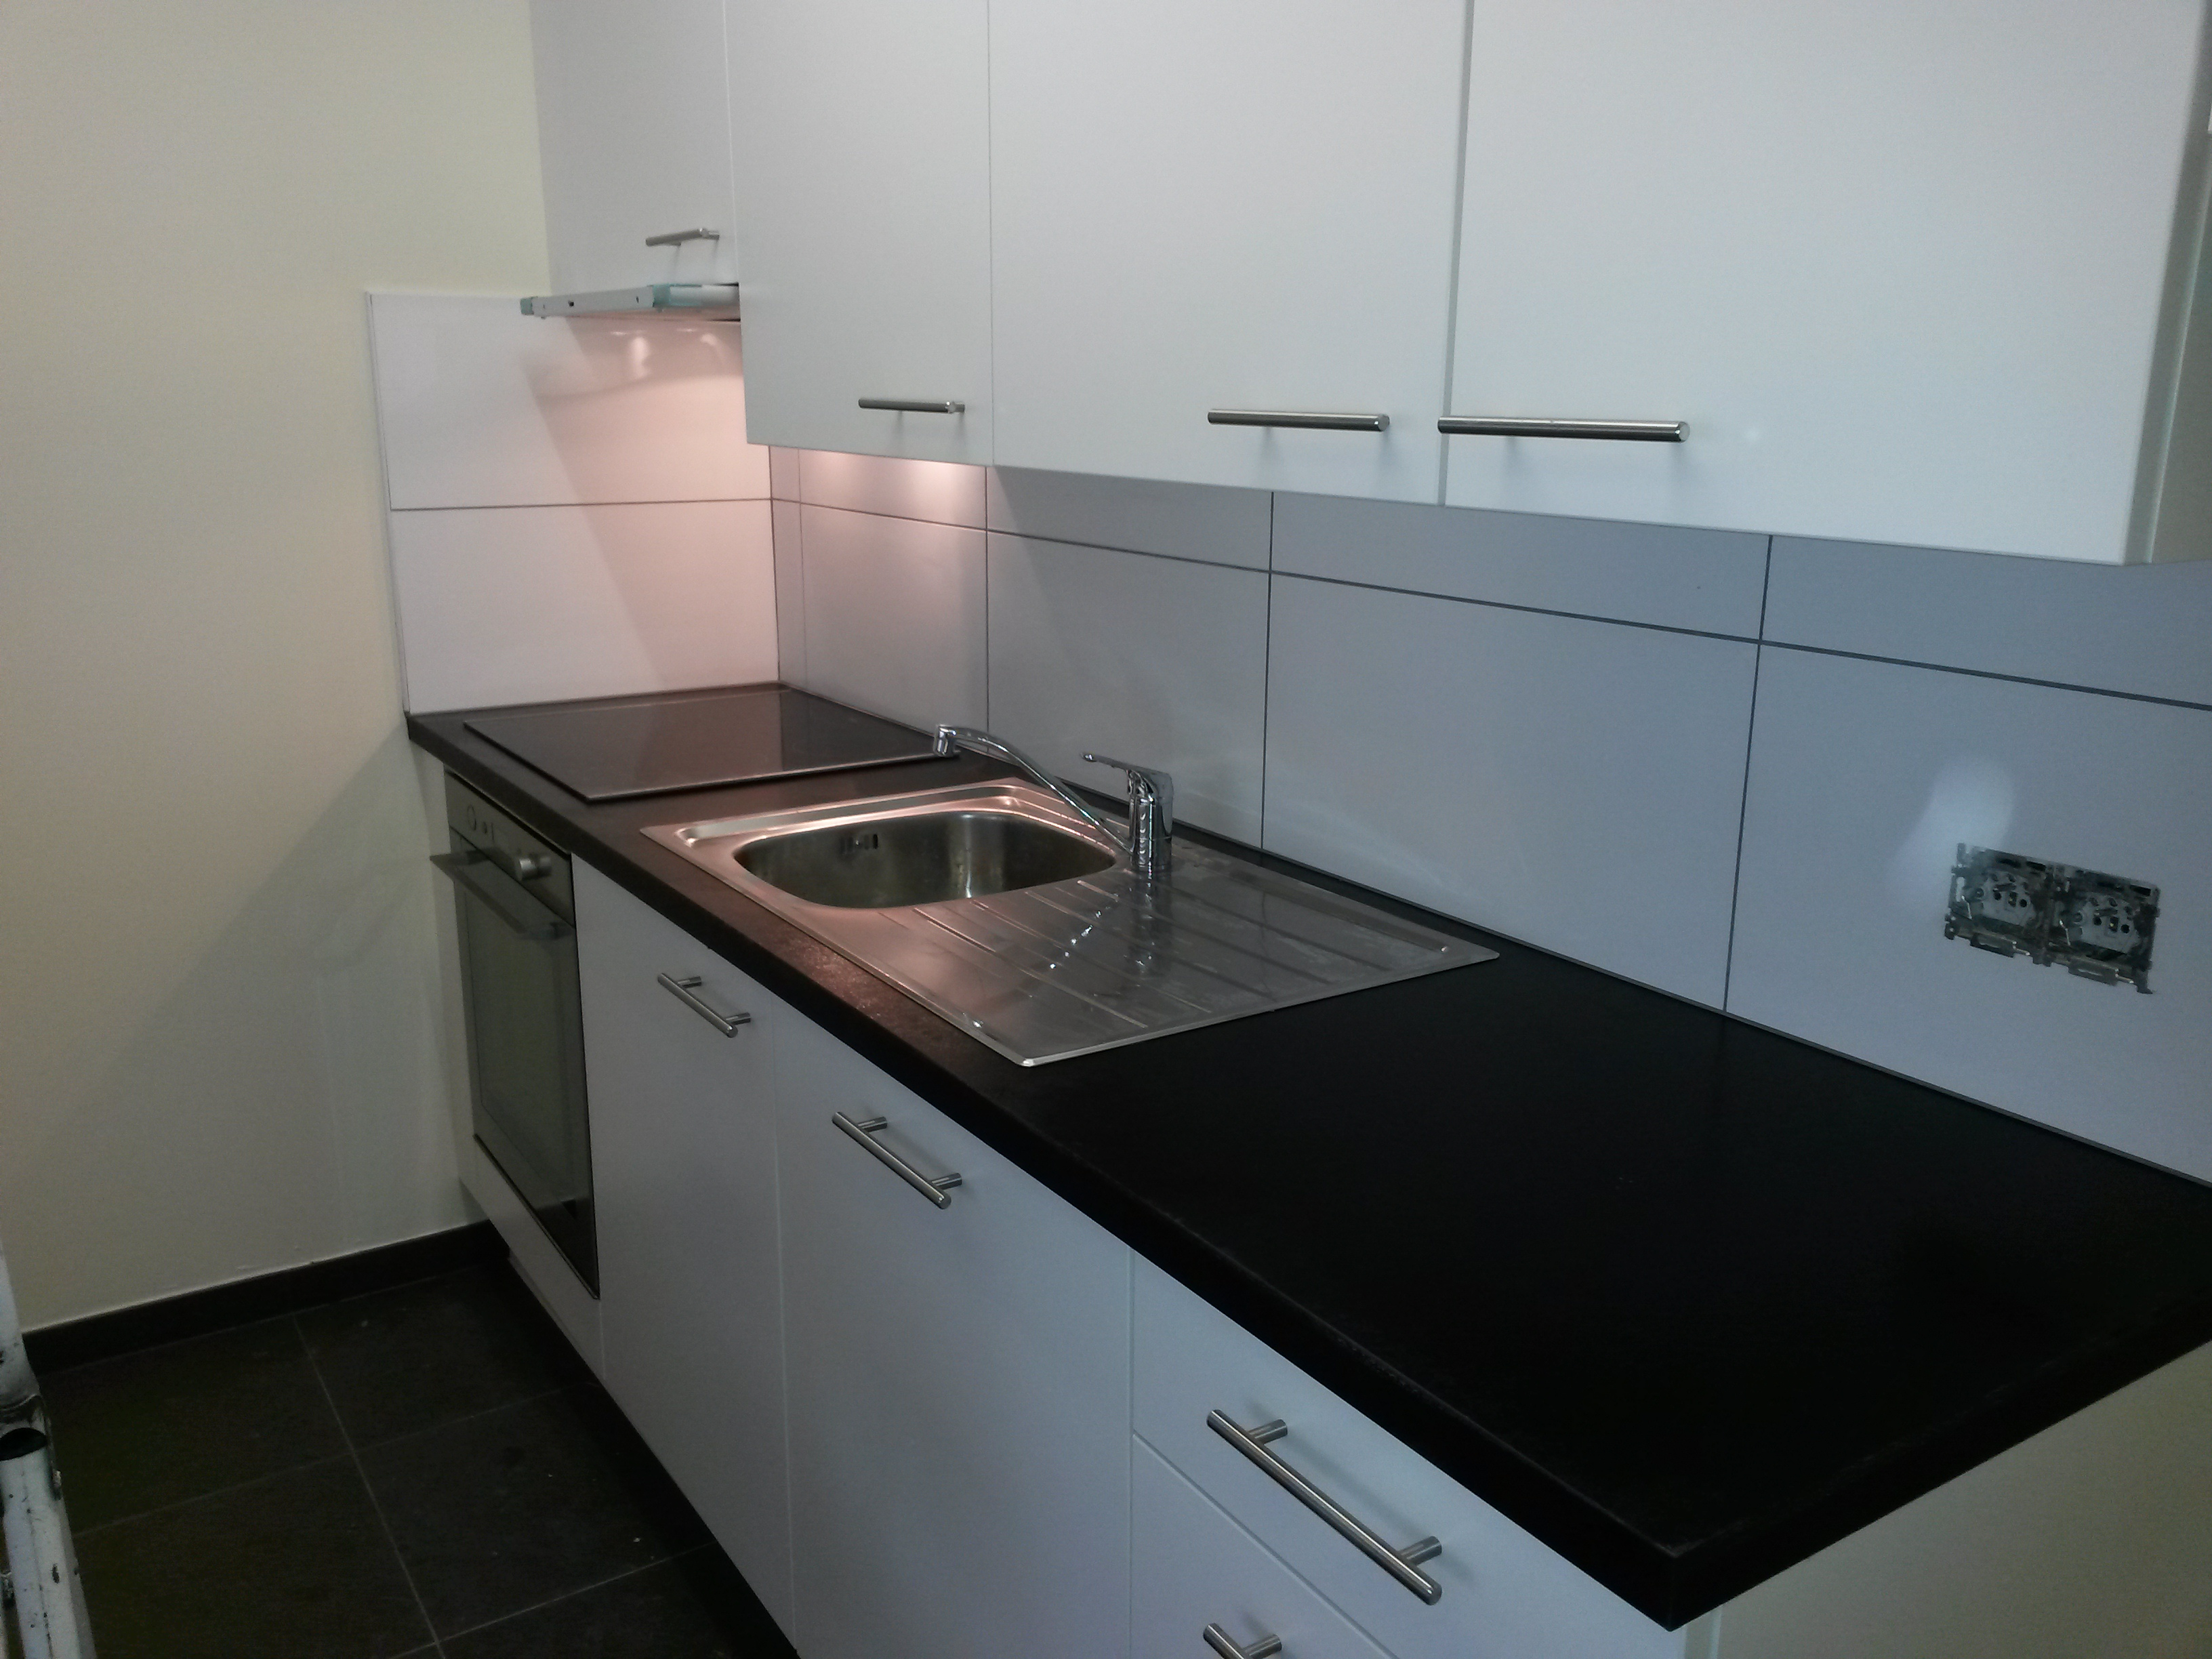 R alisation d 39 une cr dence braine l 39 alleud e r c sprl for Carrelage waterloo